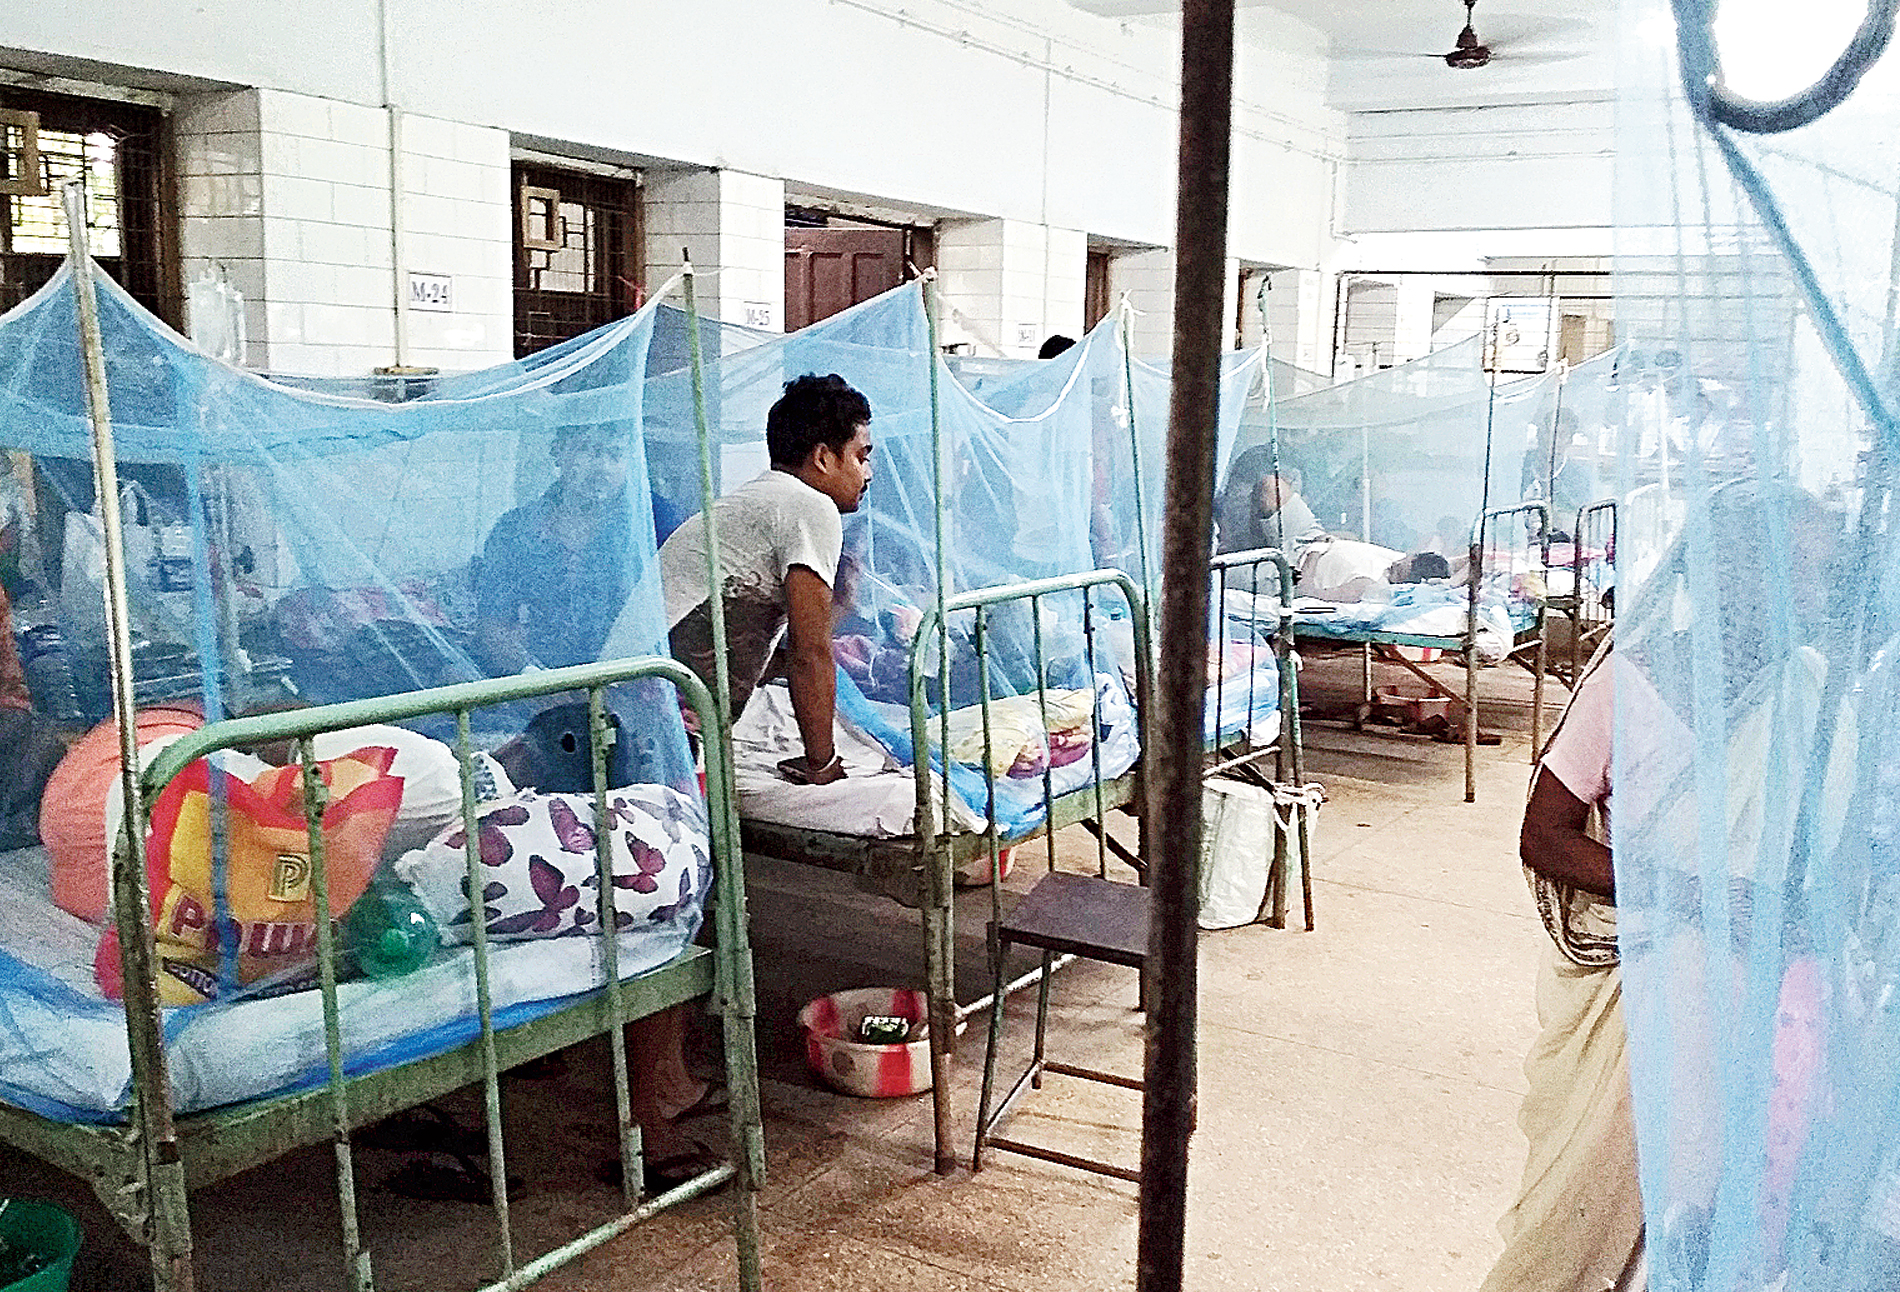 Ashoknagar State General Hospital in North 24-Parganas a sea of blue because of mosquito nets over beds.